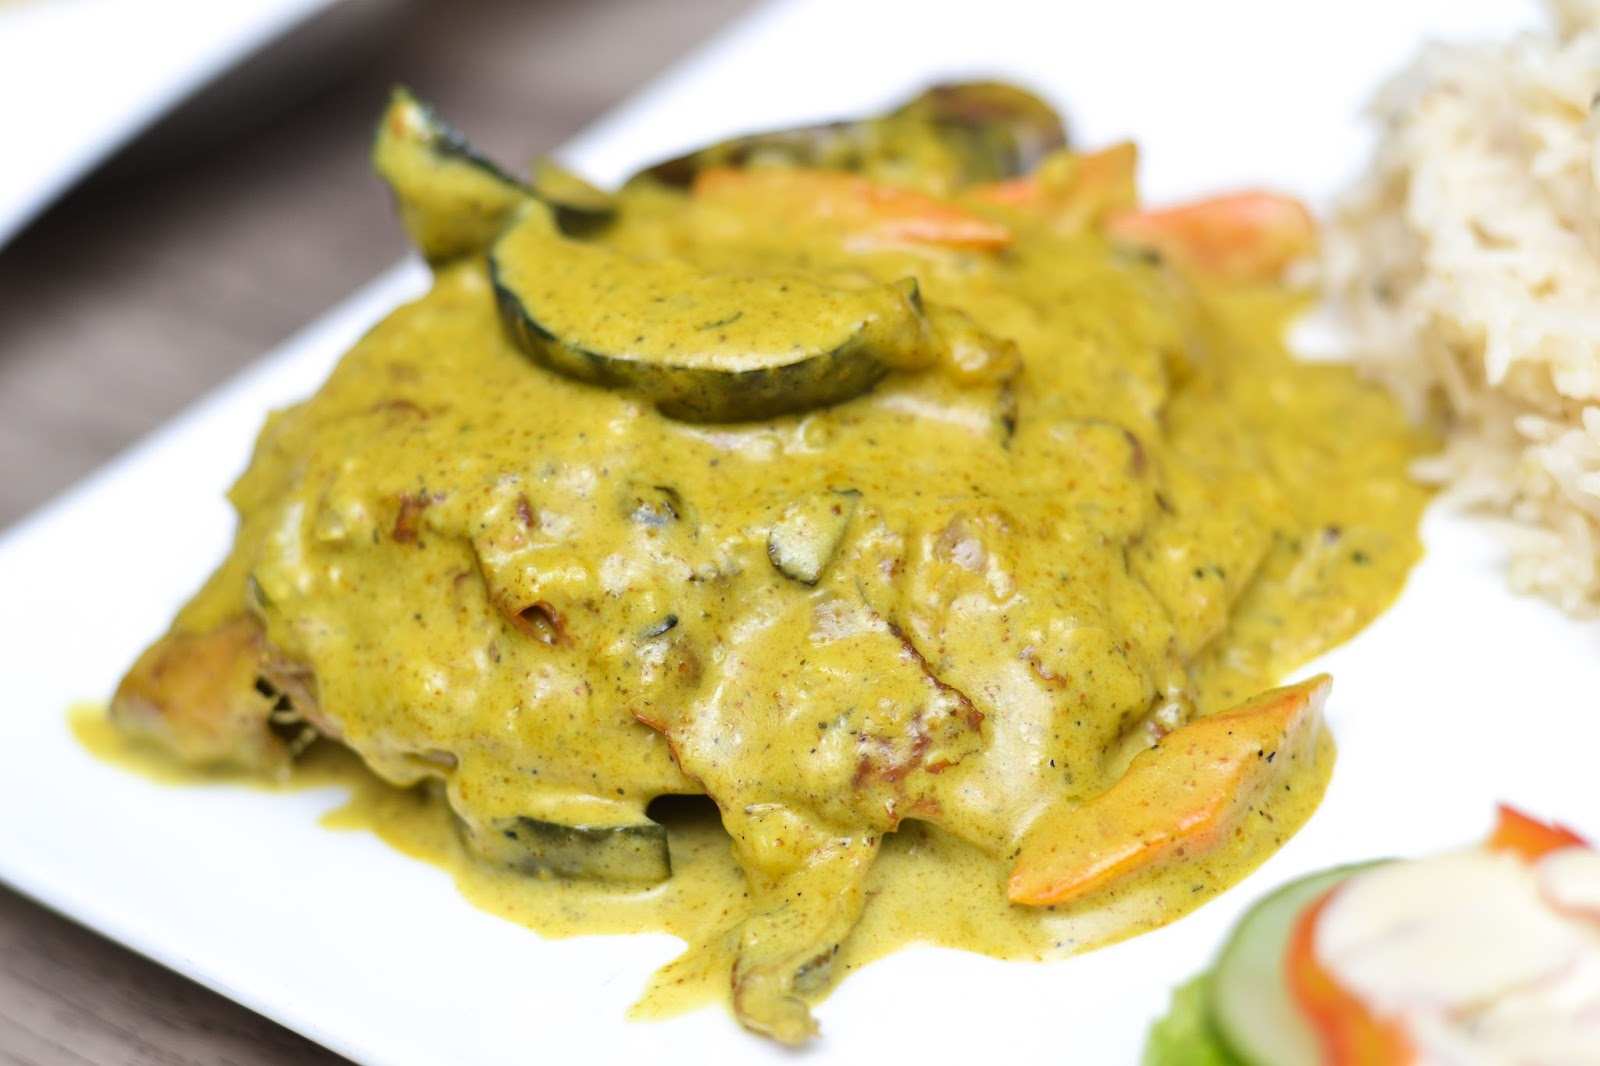 Chicken Grand Mere curry in Nigeria